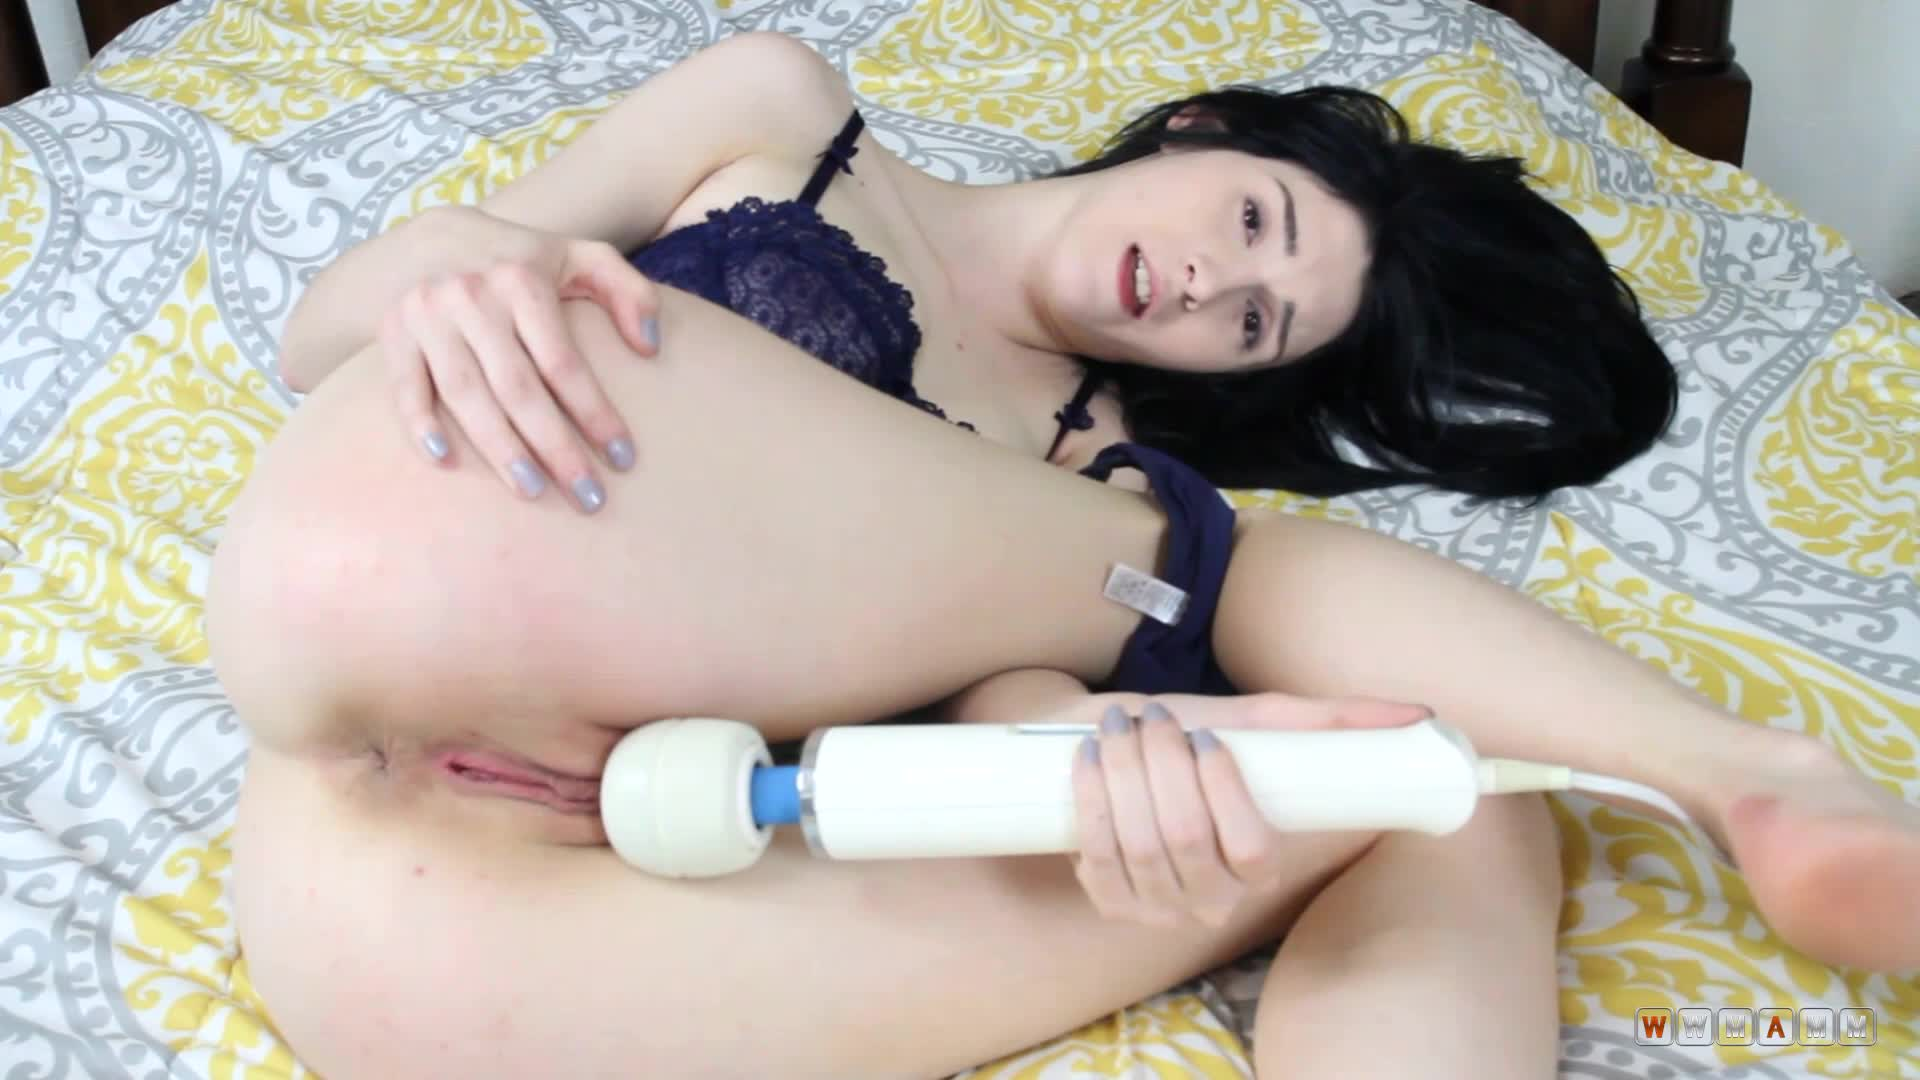 Ivy Aura Gets Really Excited When She Has Vibrator Near Her